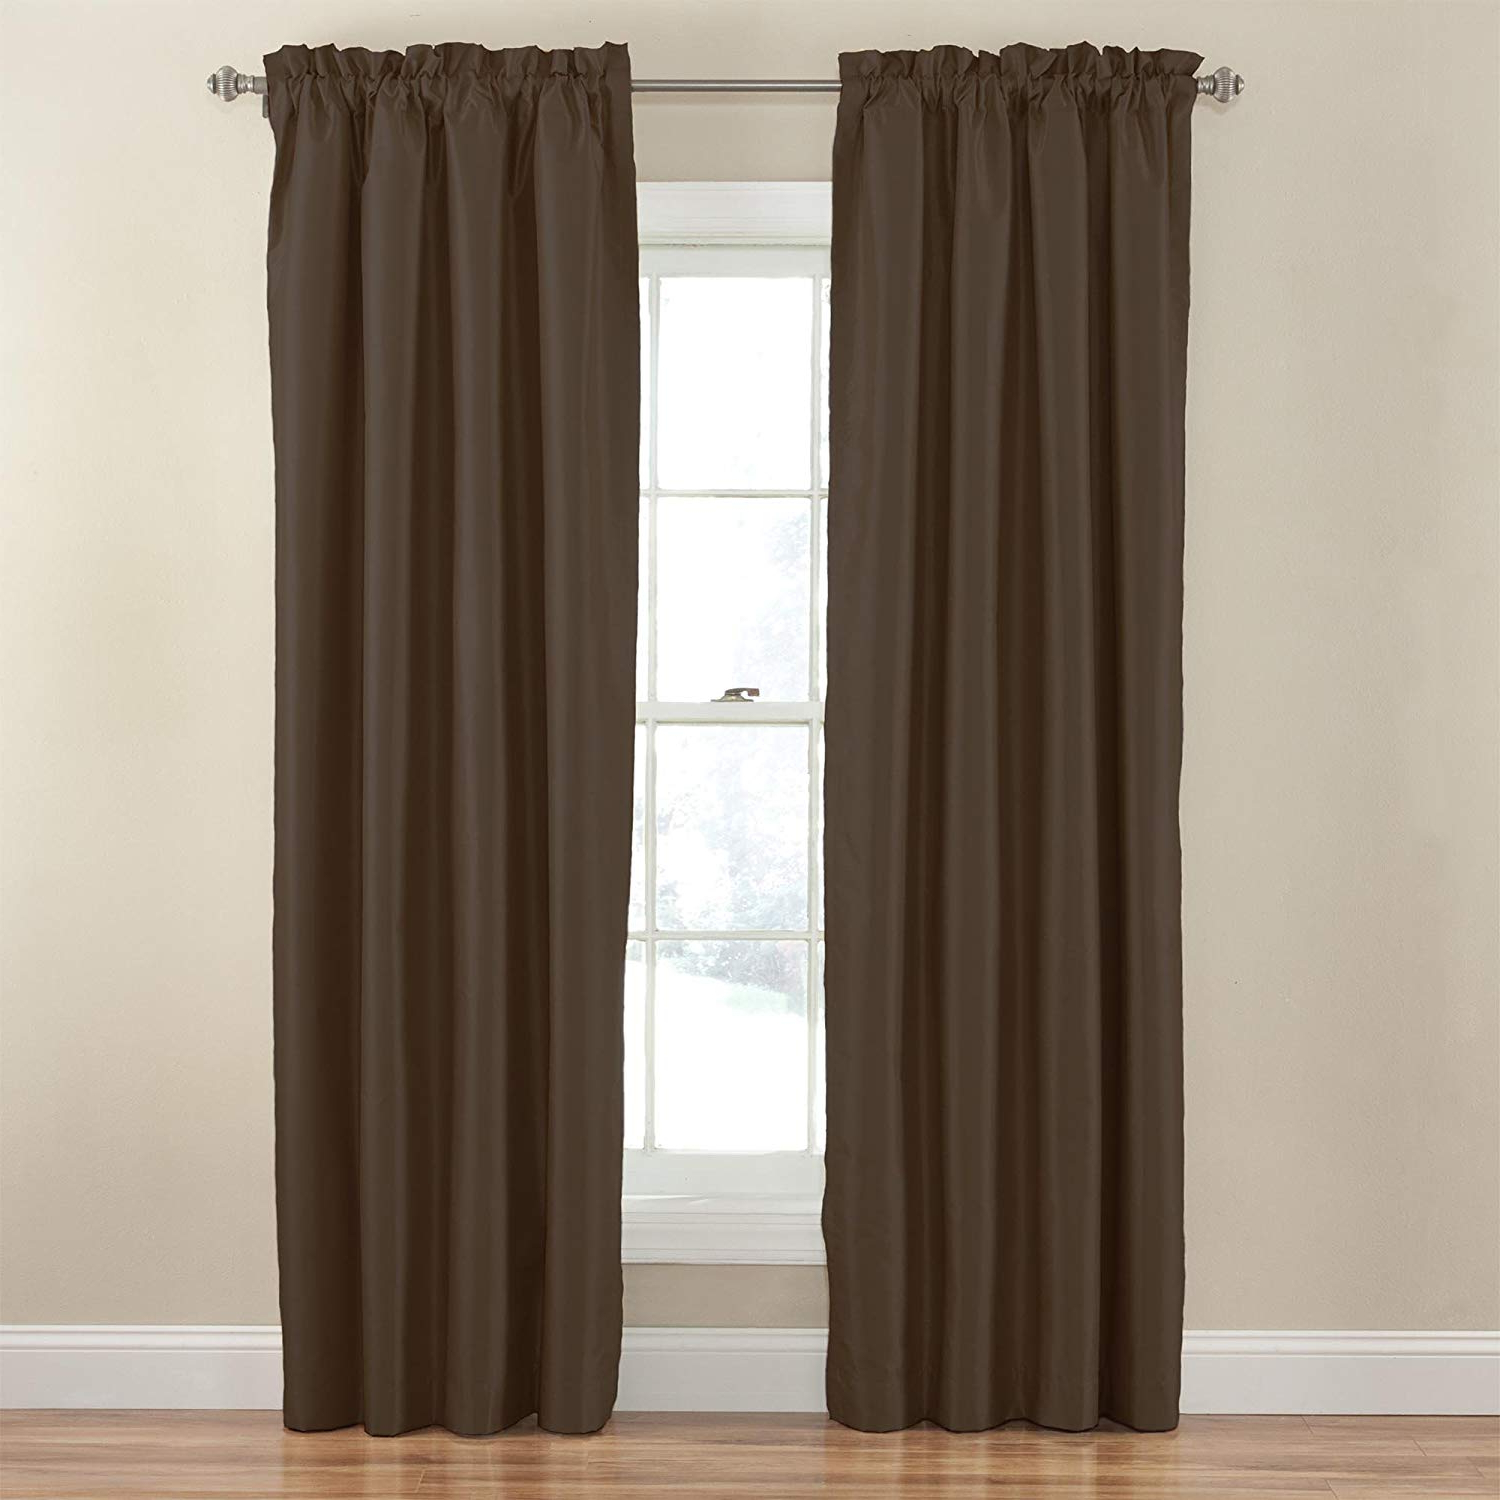 Widely Used Hayden Rod Pocket Blackout Panels For Eclipse 14383042X063Esp Hayden Solid 42 Inch63 Inch Blackout Single  Window Curtain Panel, Espresso (View 20 of 20)